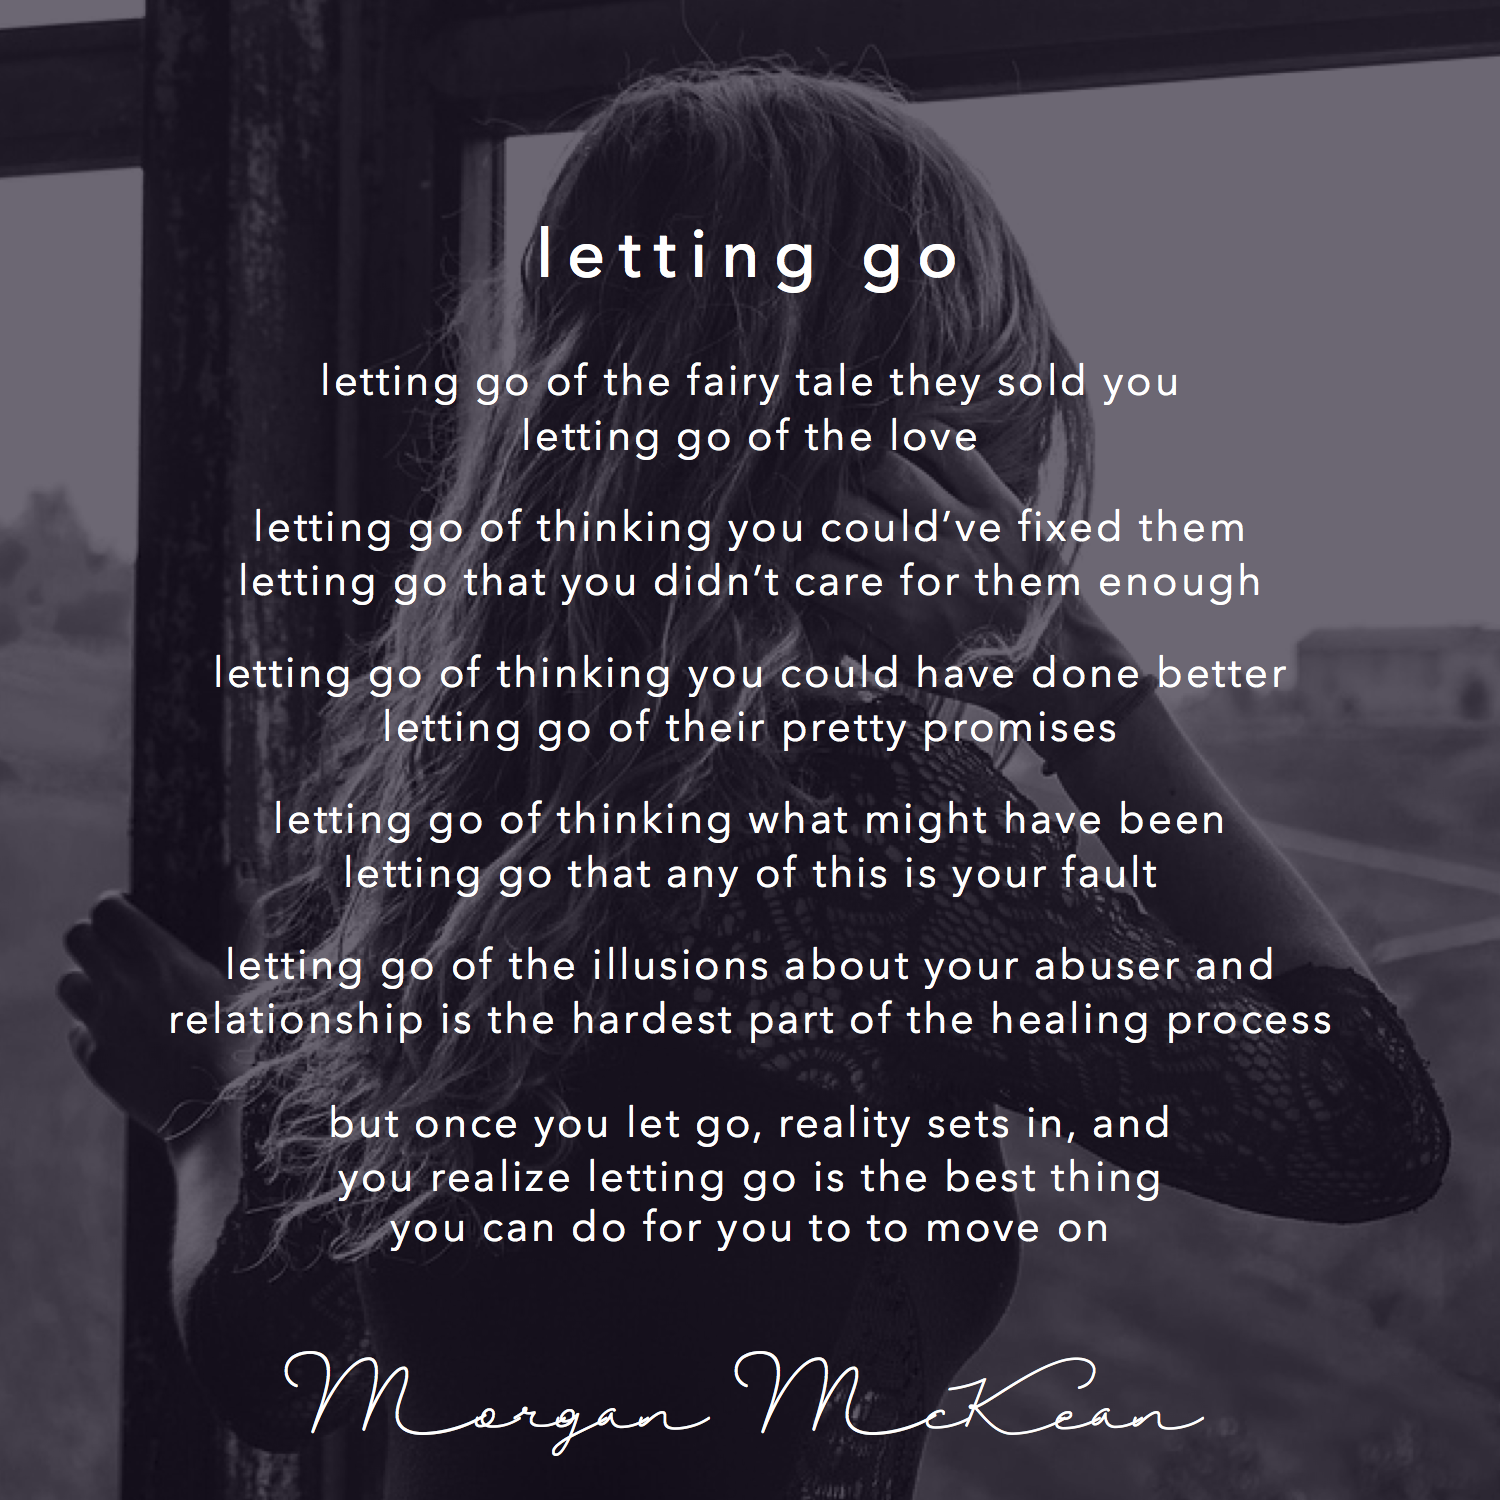 Most Moving Quotes: Letting Go Of The Love You Felt For The Person You Thought